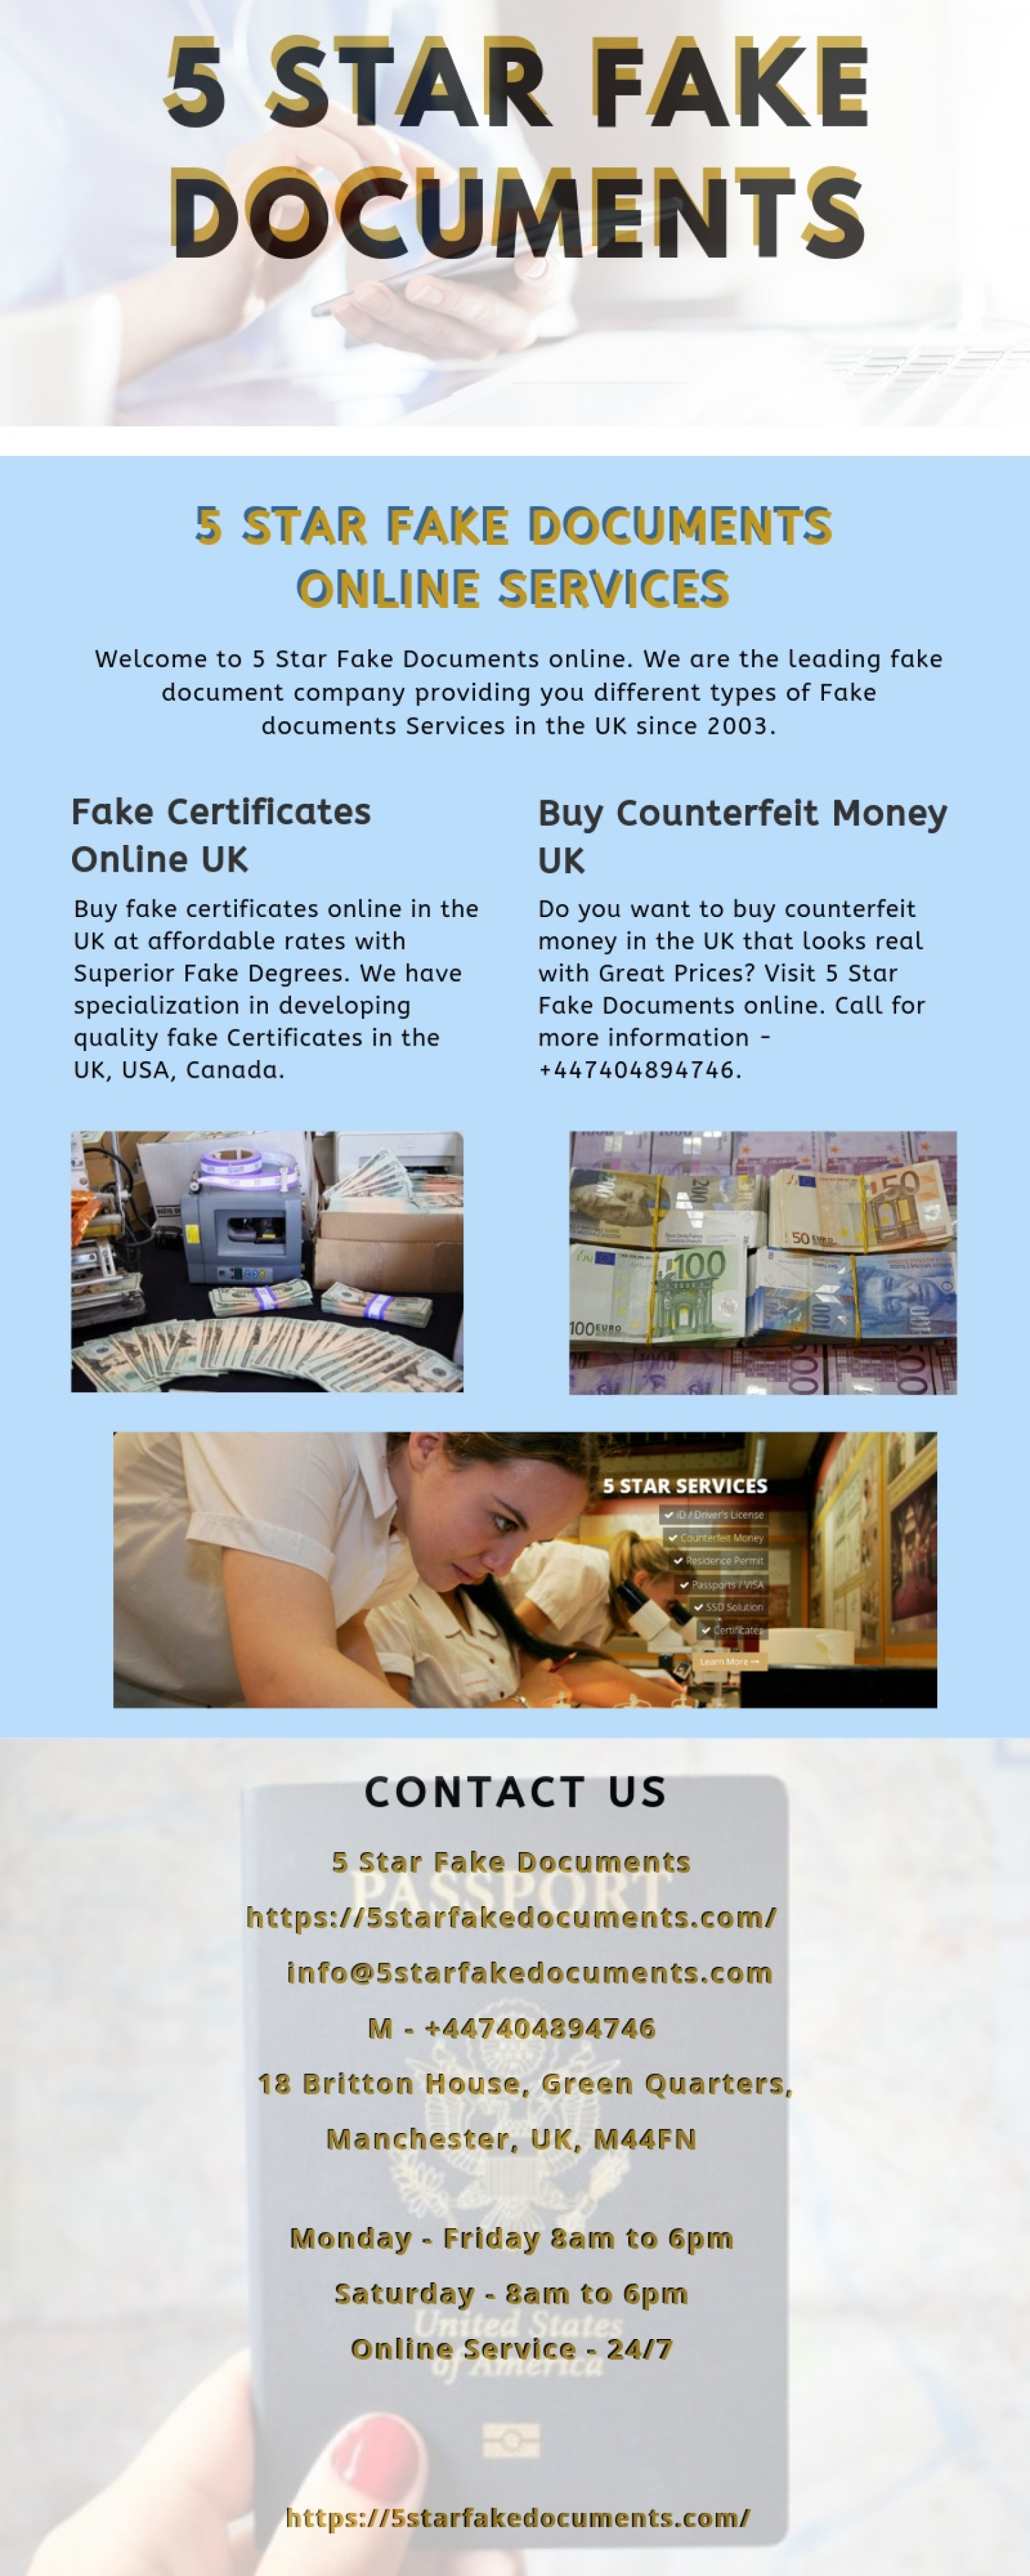 Sealing Criminal Records - 5 Star Fake Documents Infographic